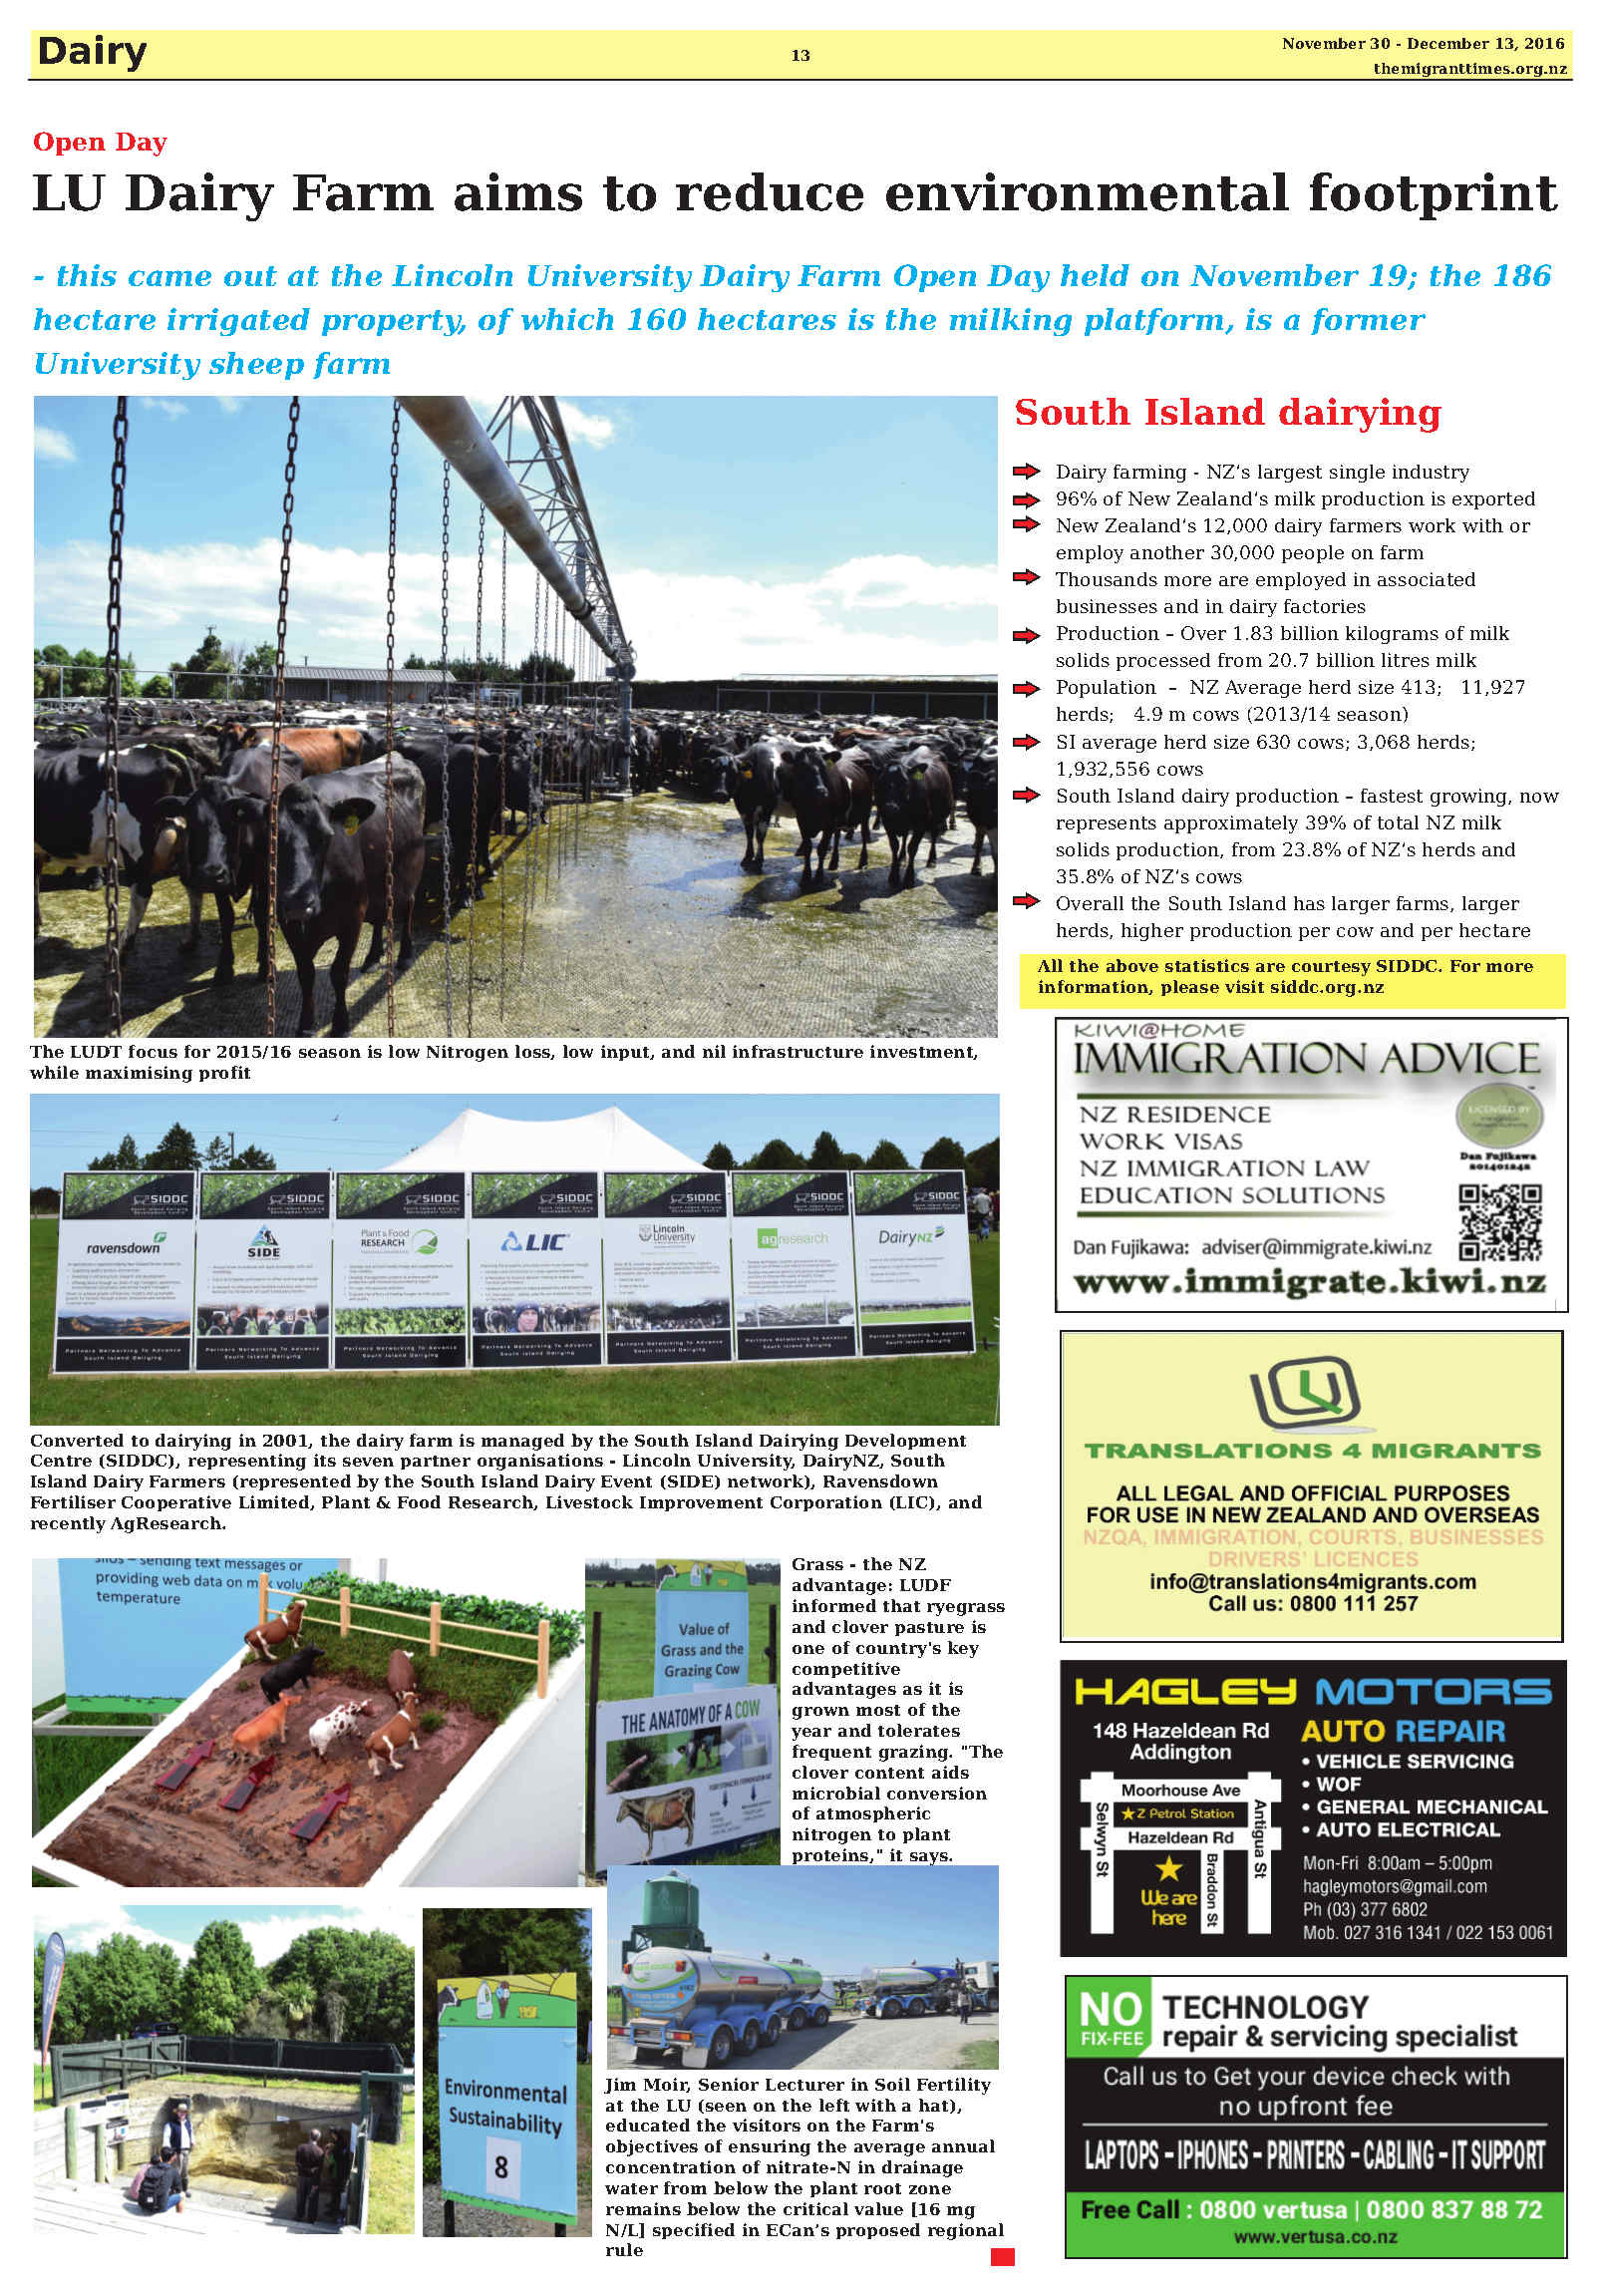 Click on the image to enlarge it and read the printed version of the story